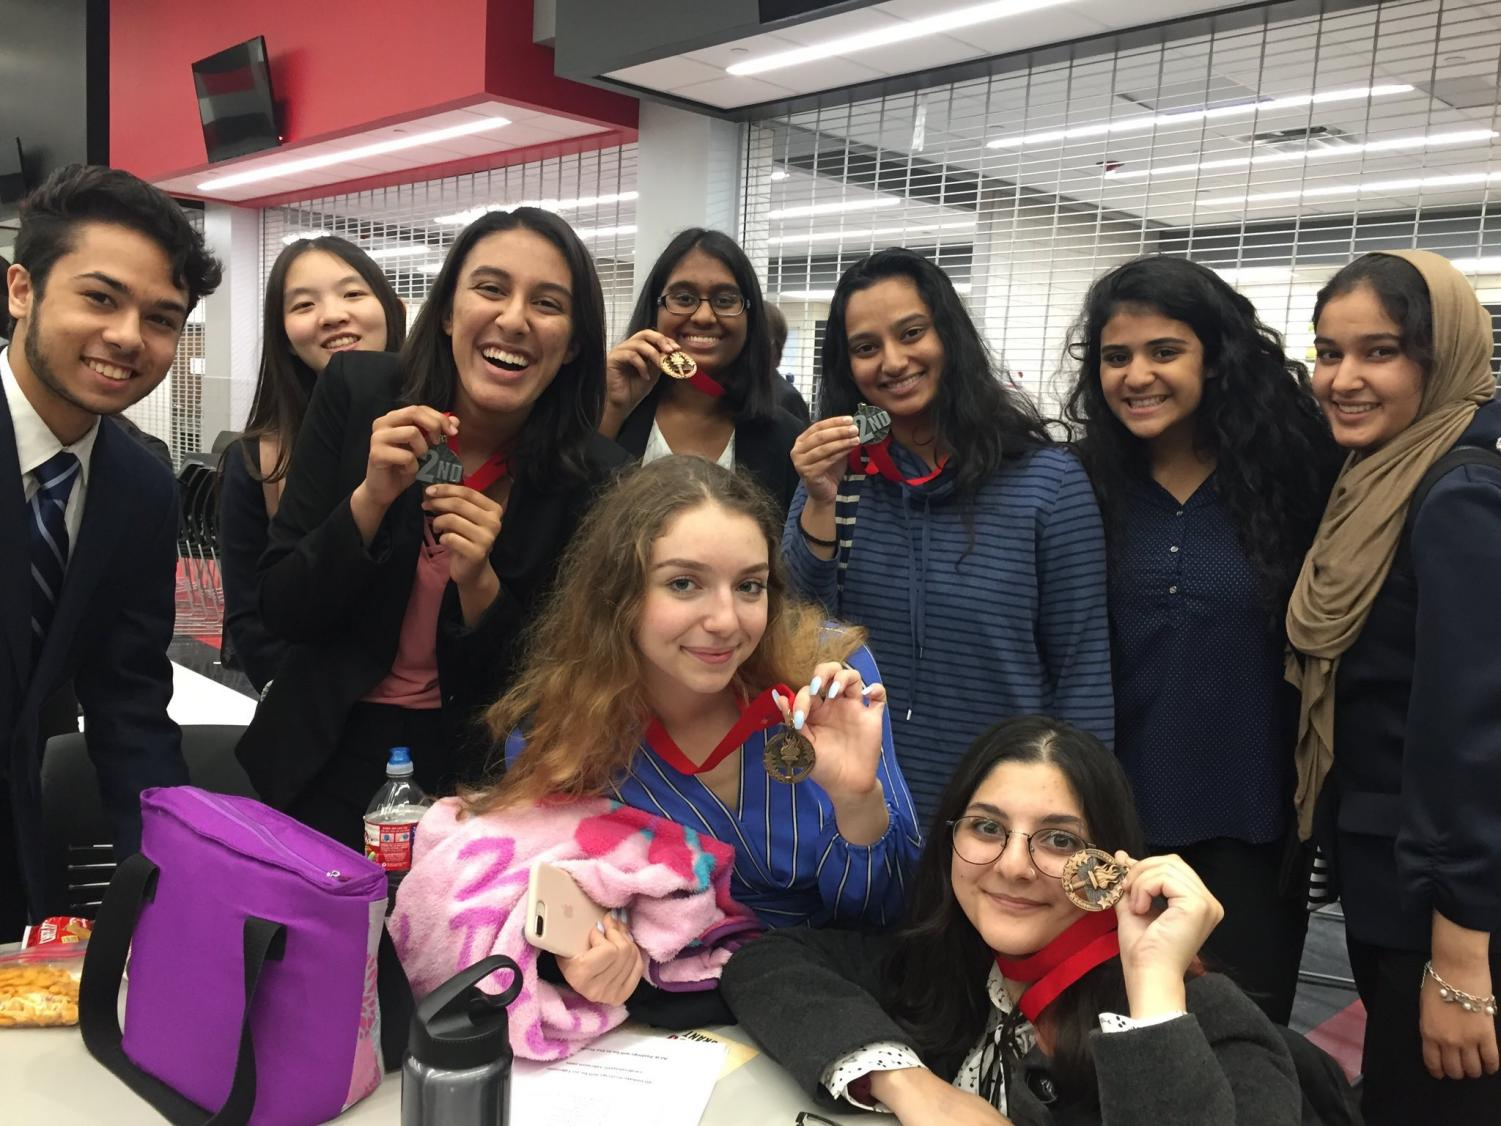 Having spent months preparing for its competitions, the school's debate team medaled in all categories in Melissa.